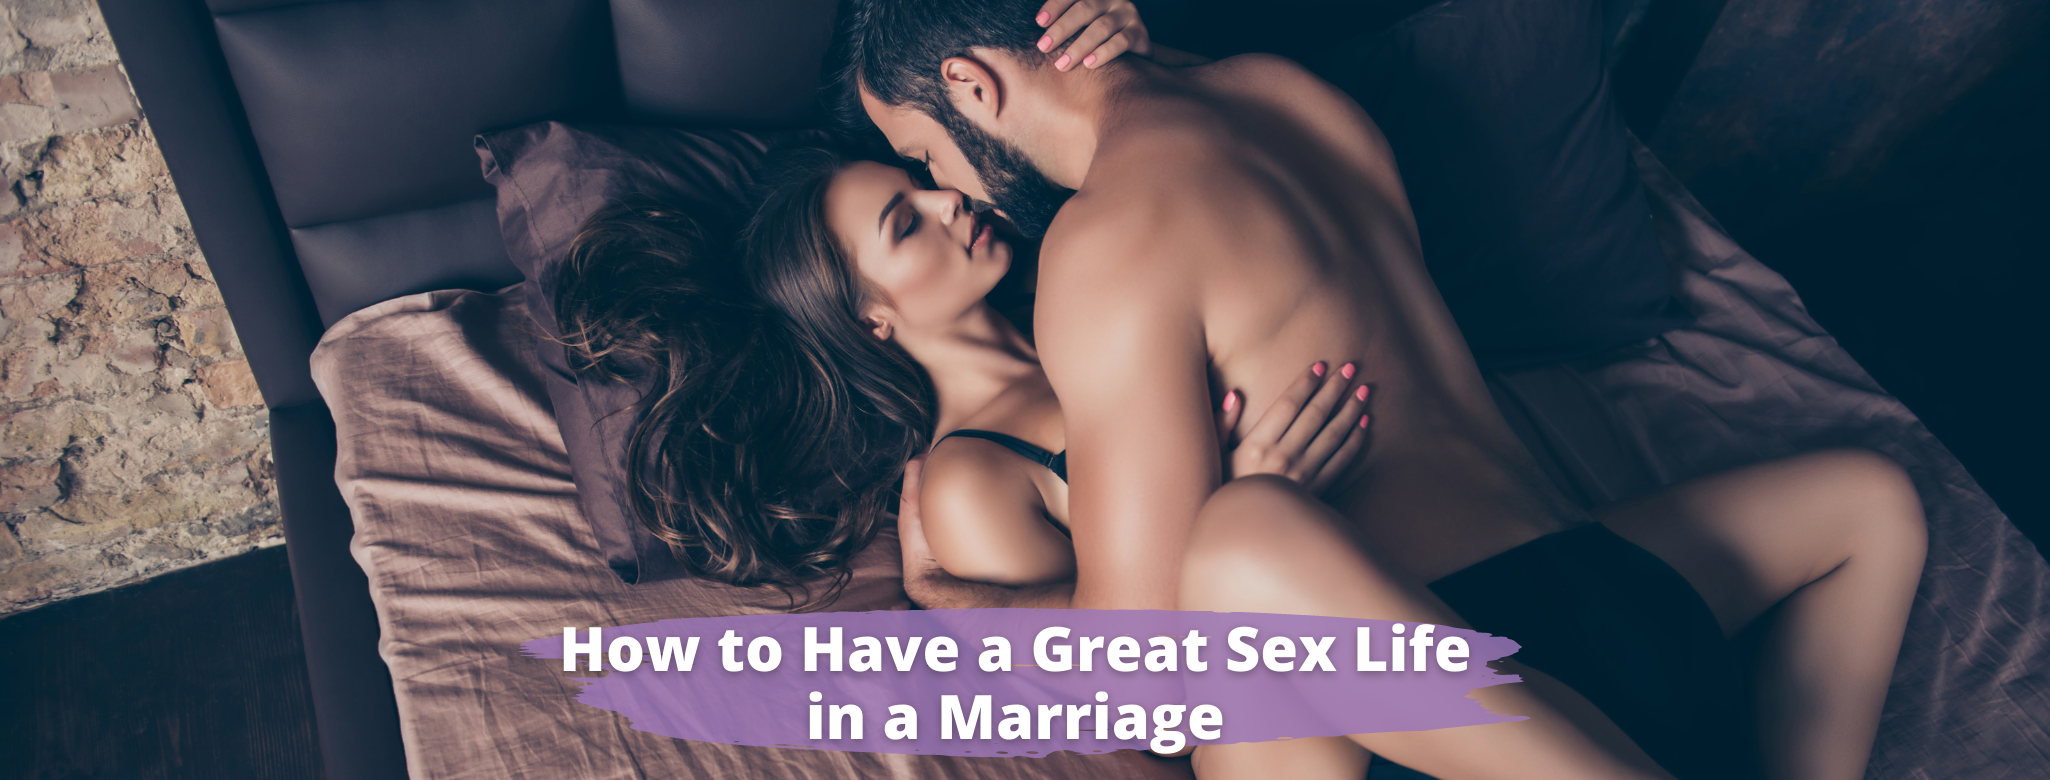 How to have a great sex life in a marriage